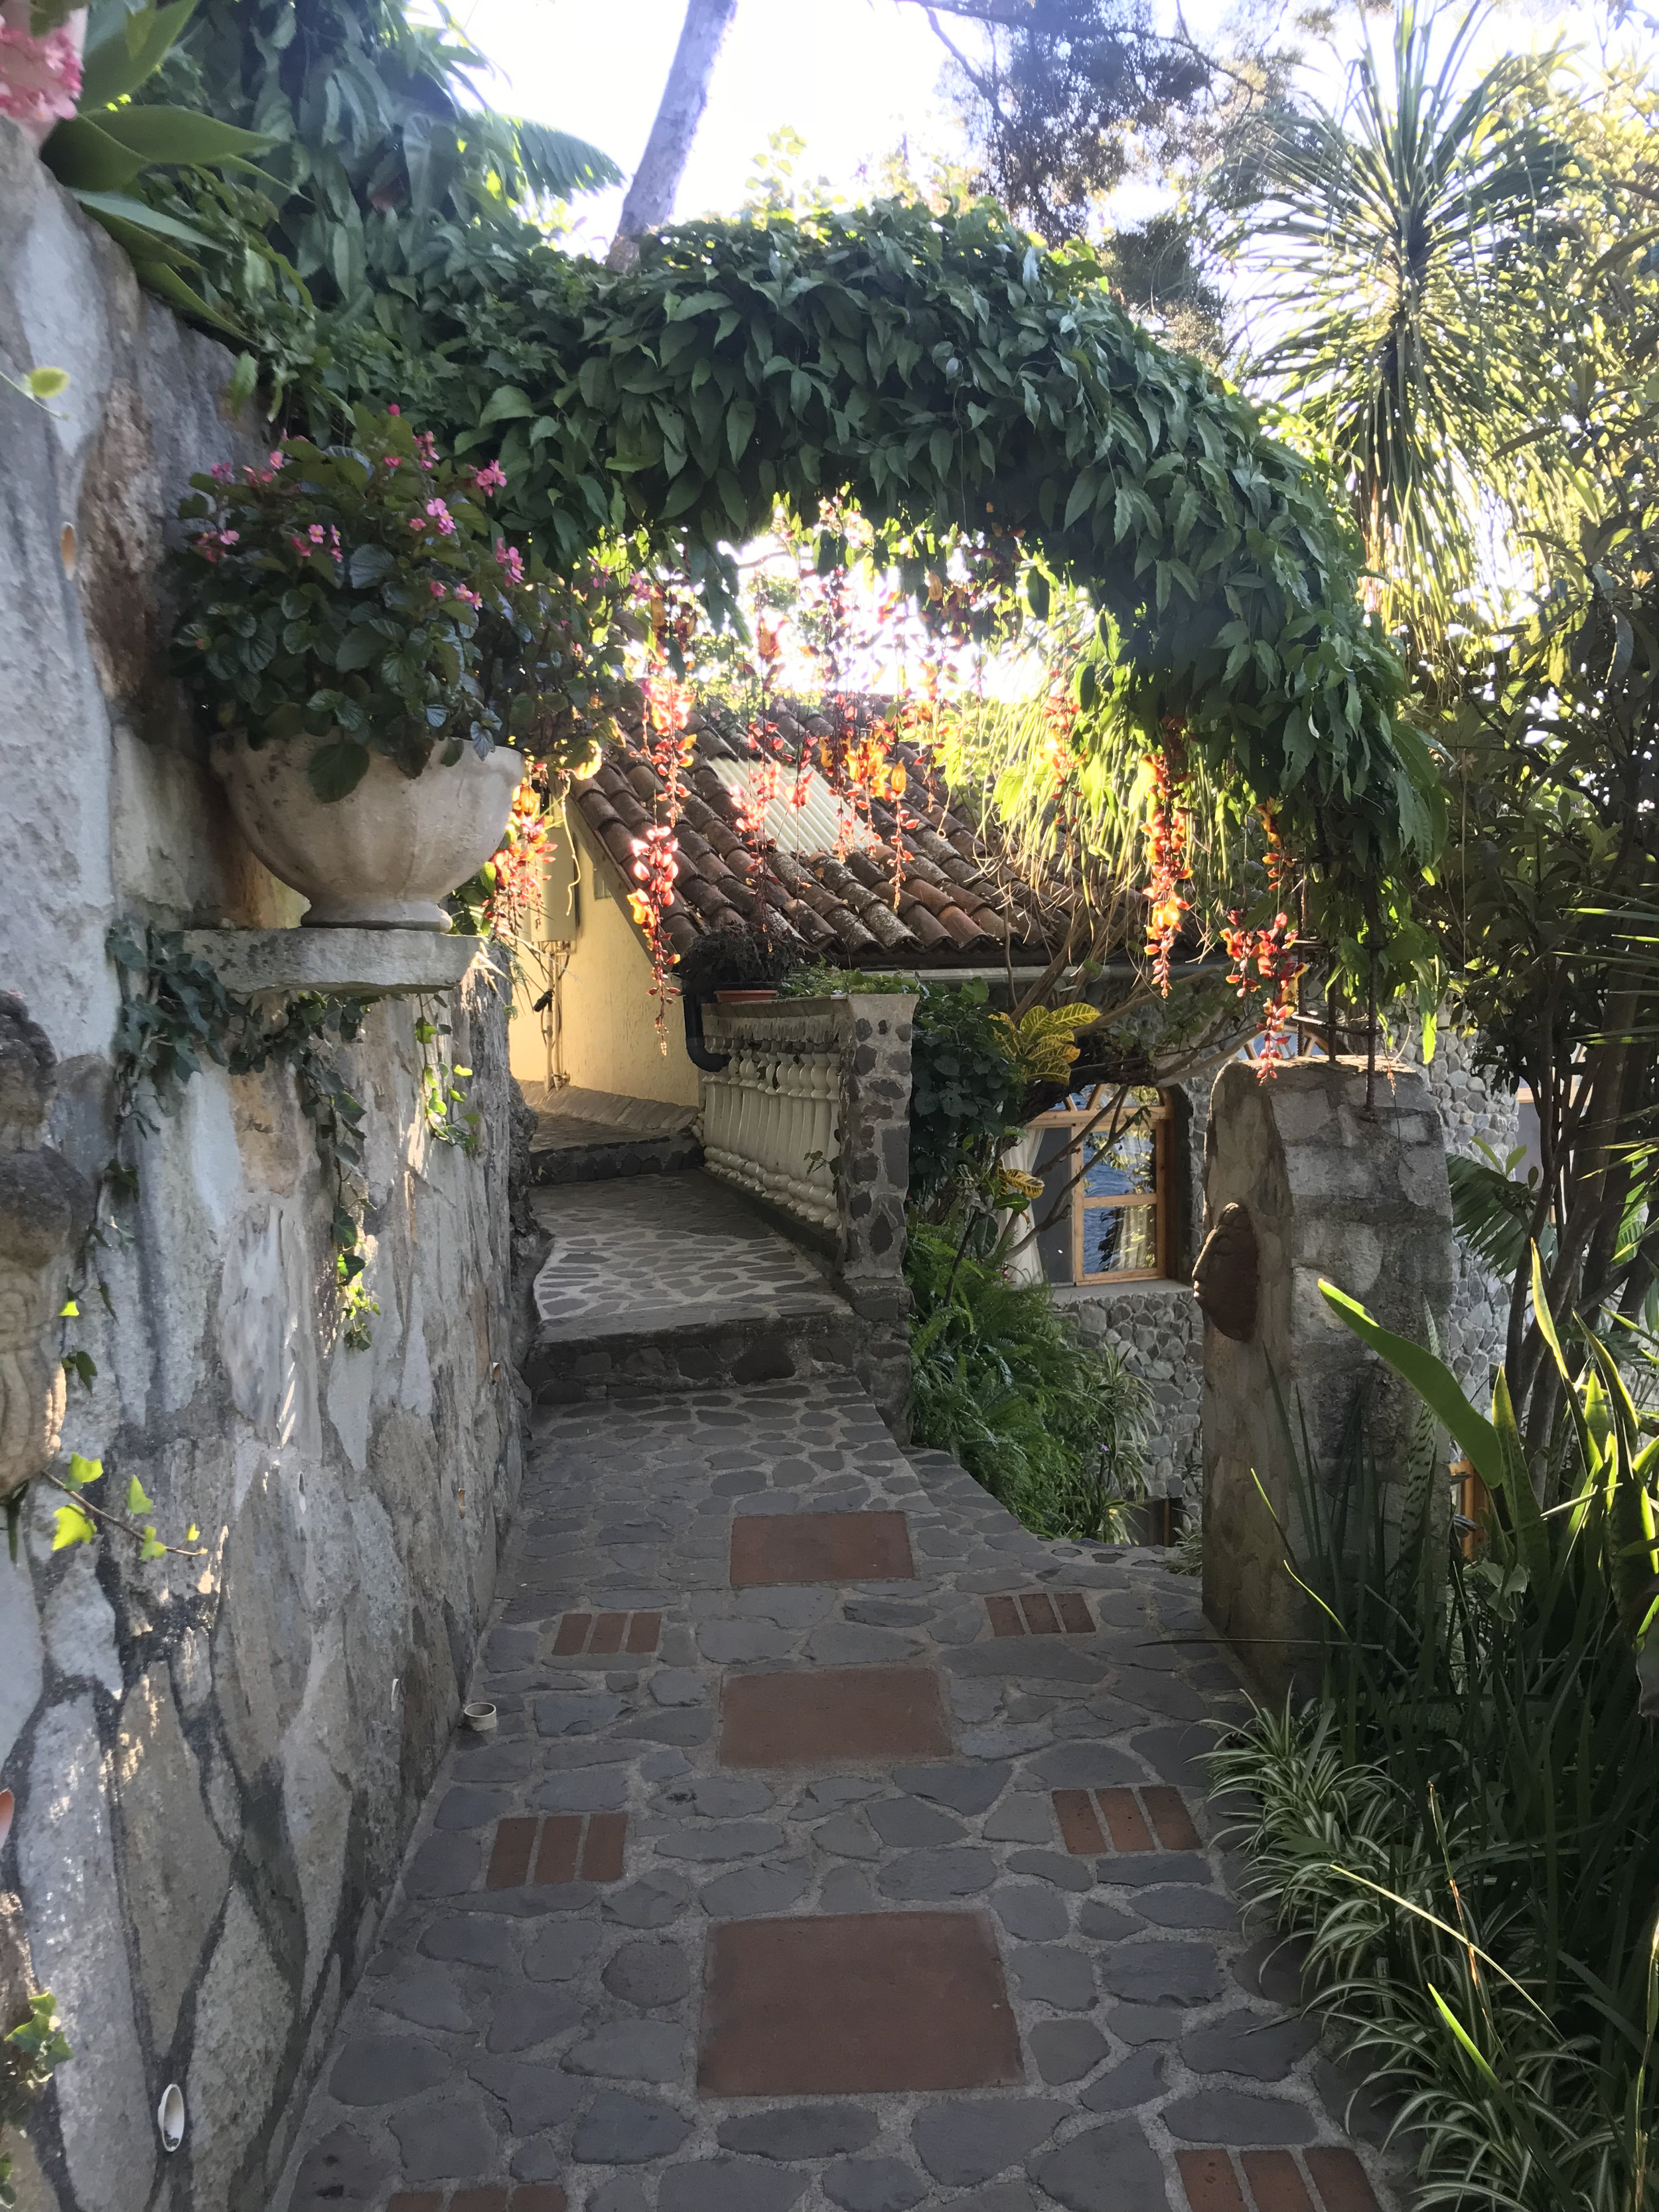 The little pathway on the way to my room, so perfectly detailed with plants and sculpture.